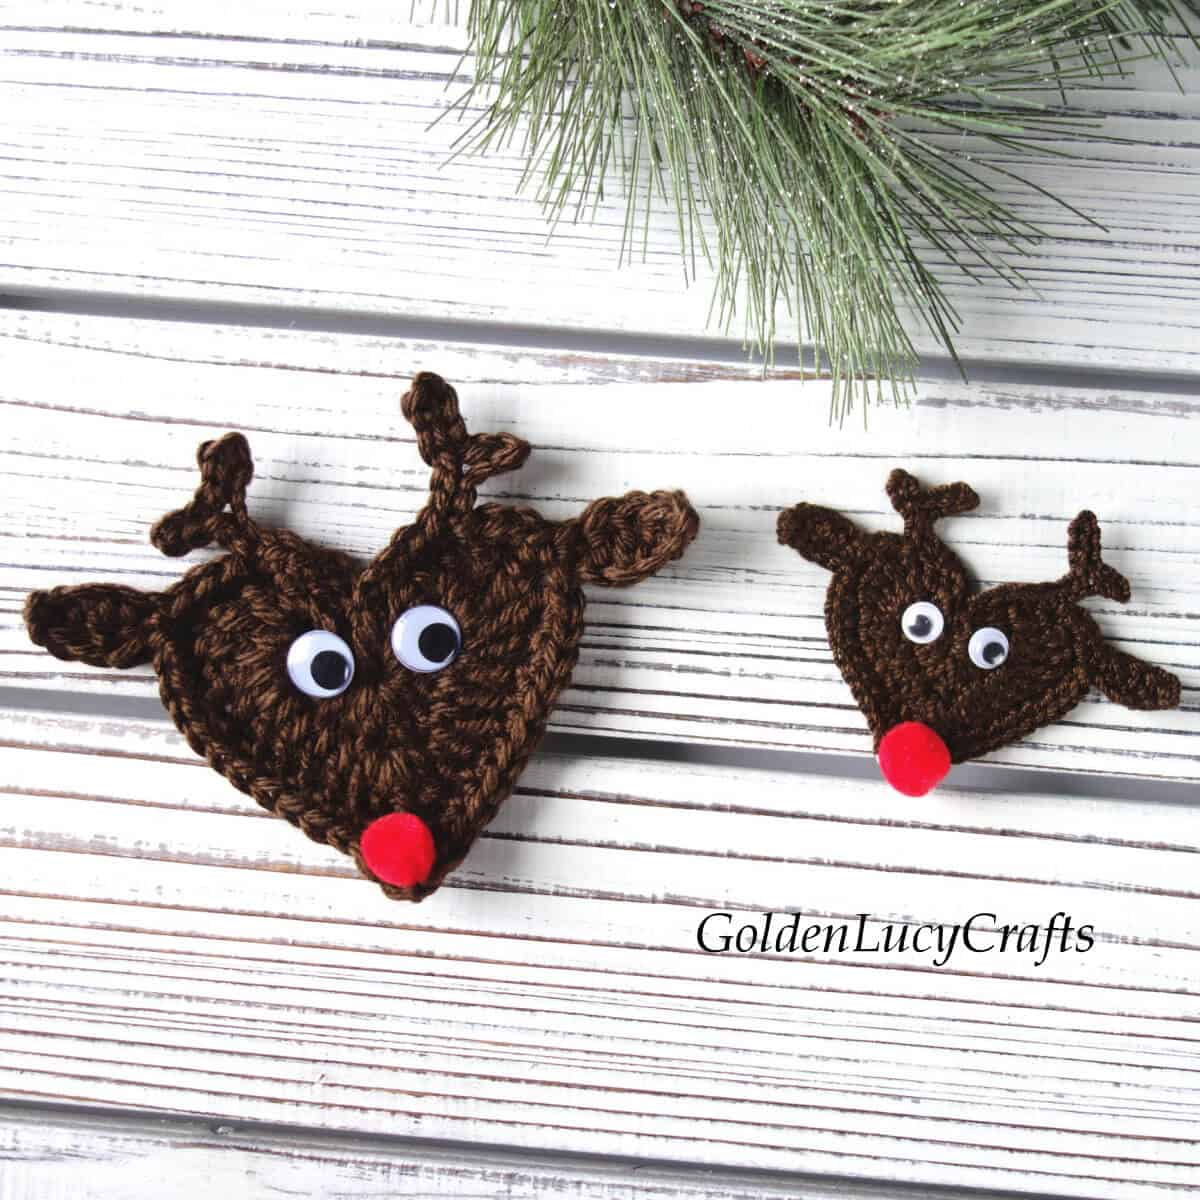 Two crocheted reindeer appliques in different sizes.